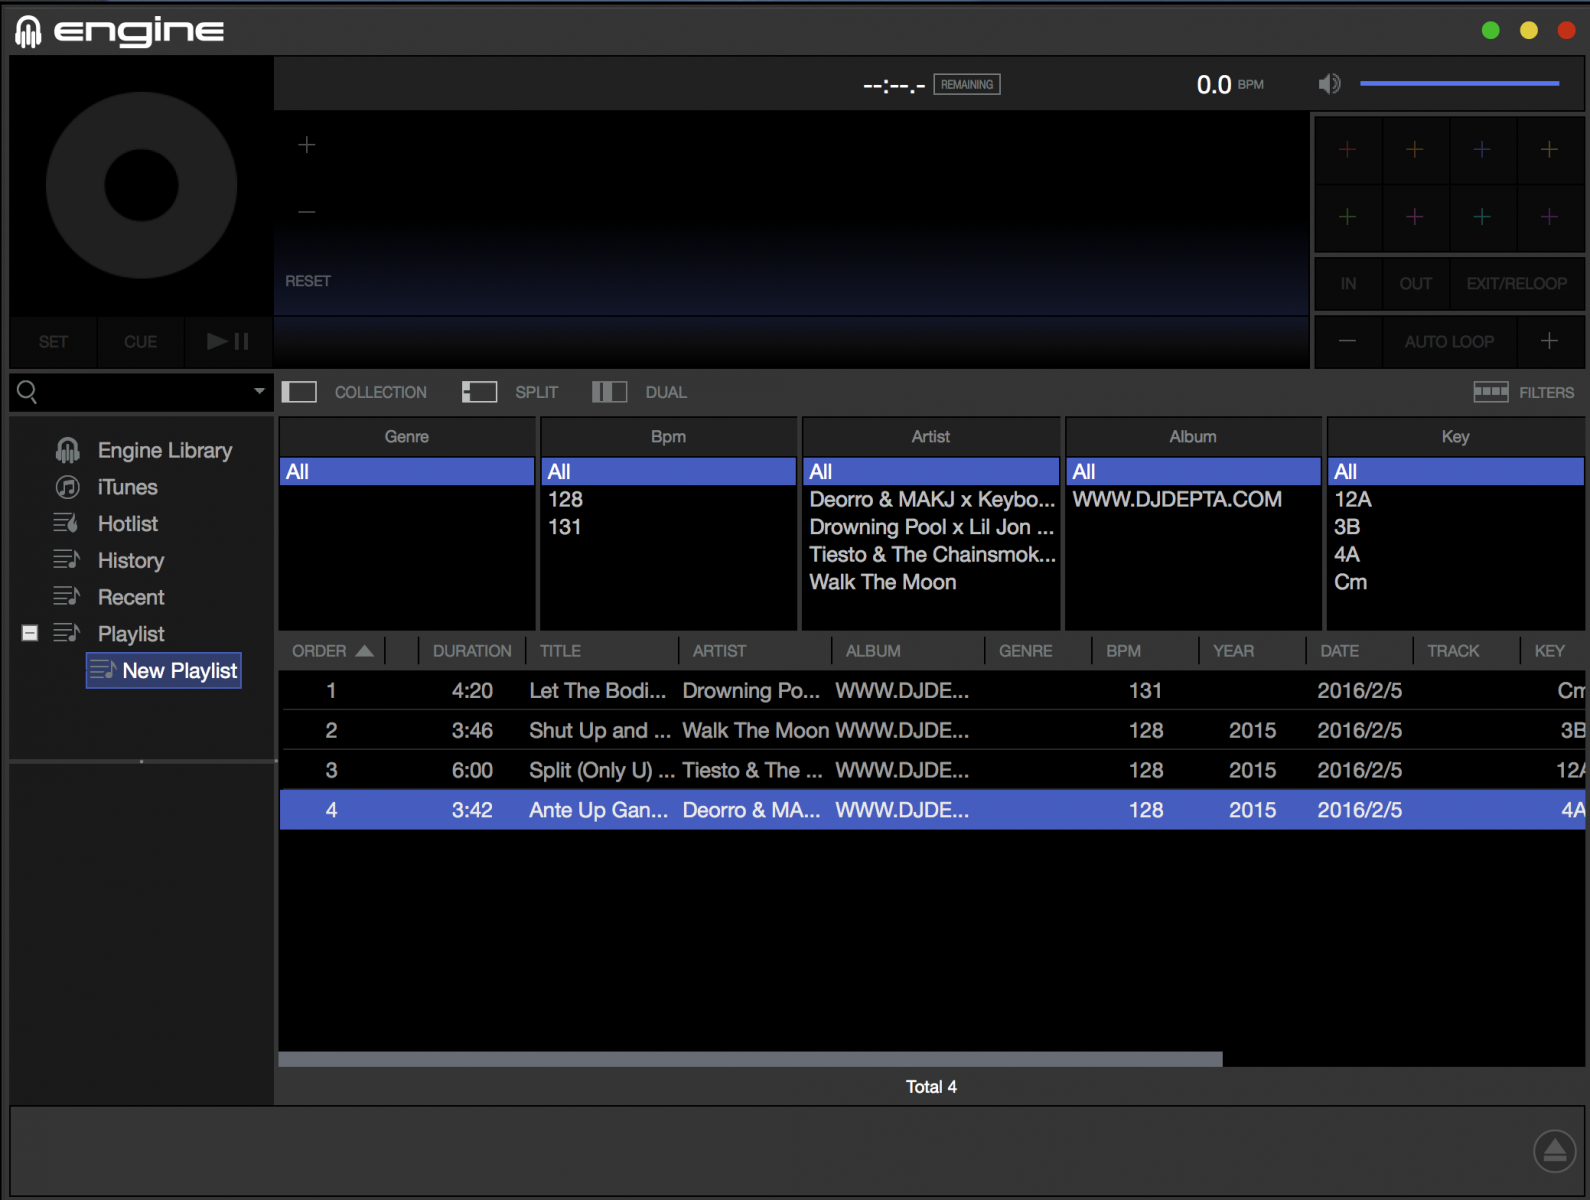 Denon DJ MCX8000 - How to Import and Analyze a Serato Crate